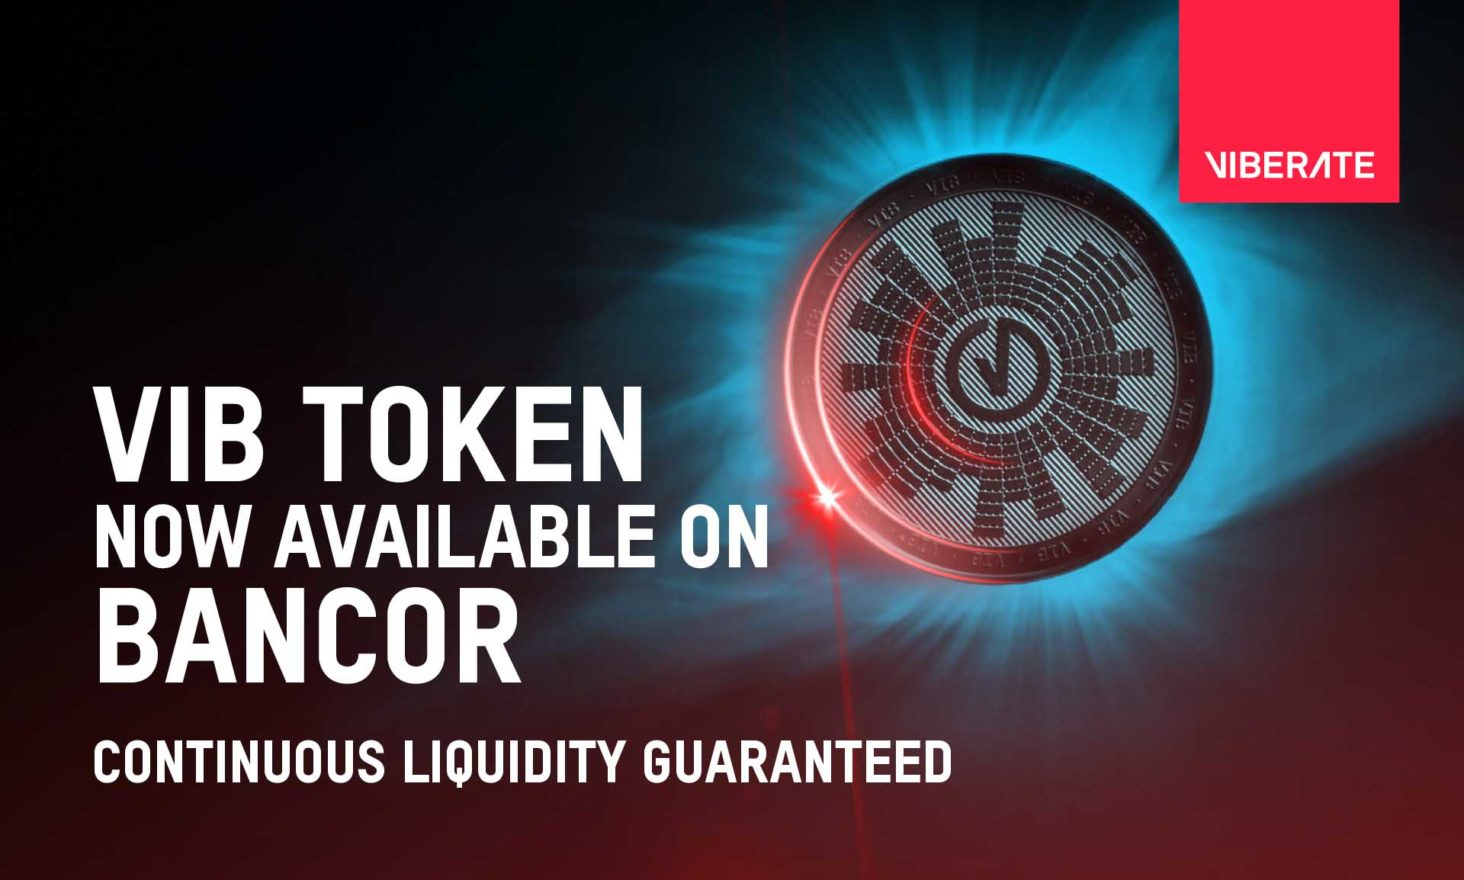 Viberate, a token for the live music industry, has just integrated the Bancor protocol — making it one of the most liquid tokens in the music industry.